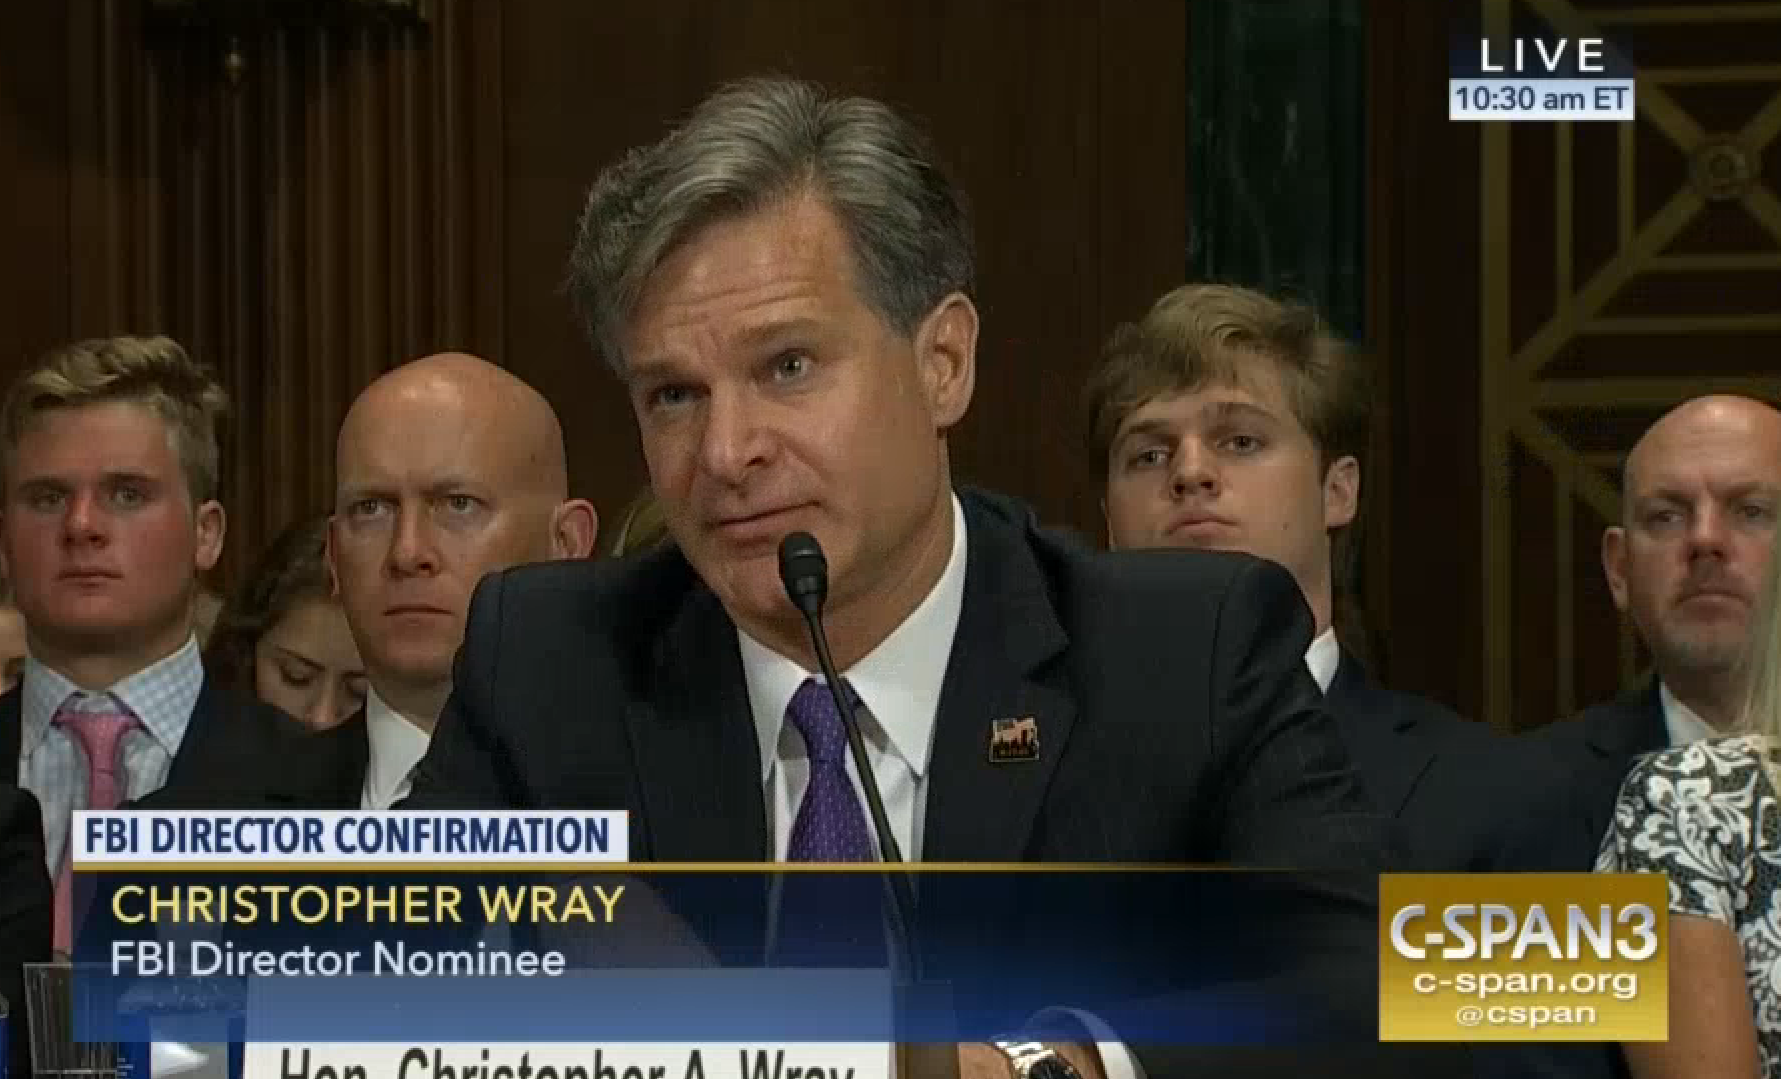 Wray Testifies & Promises Independent FBI